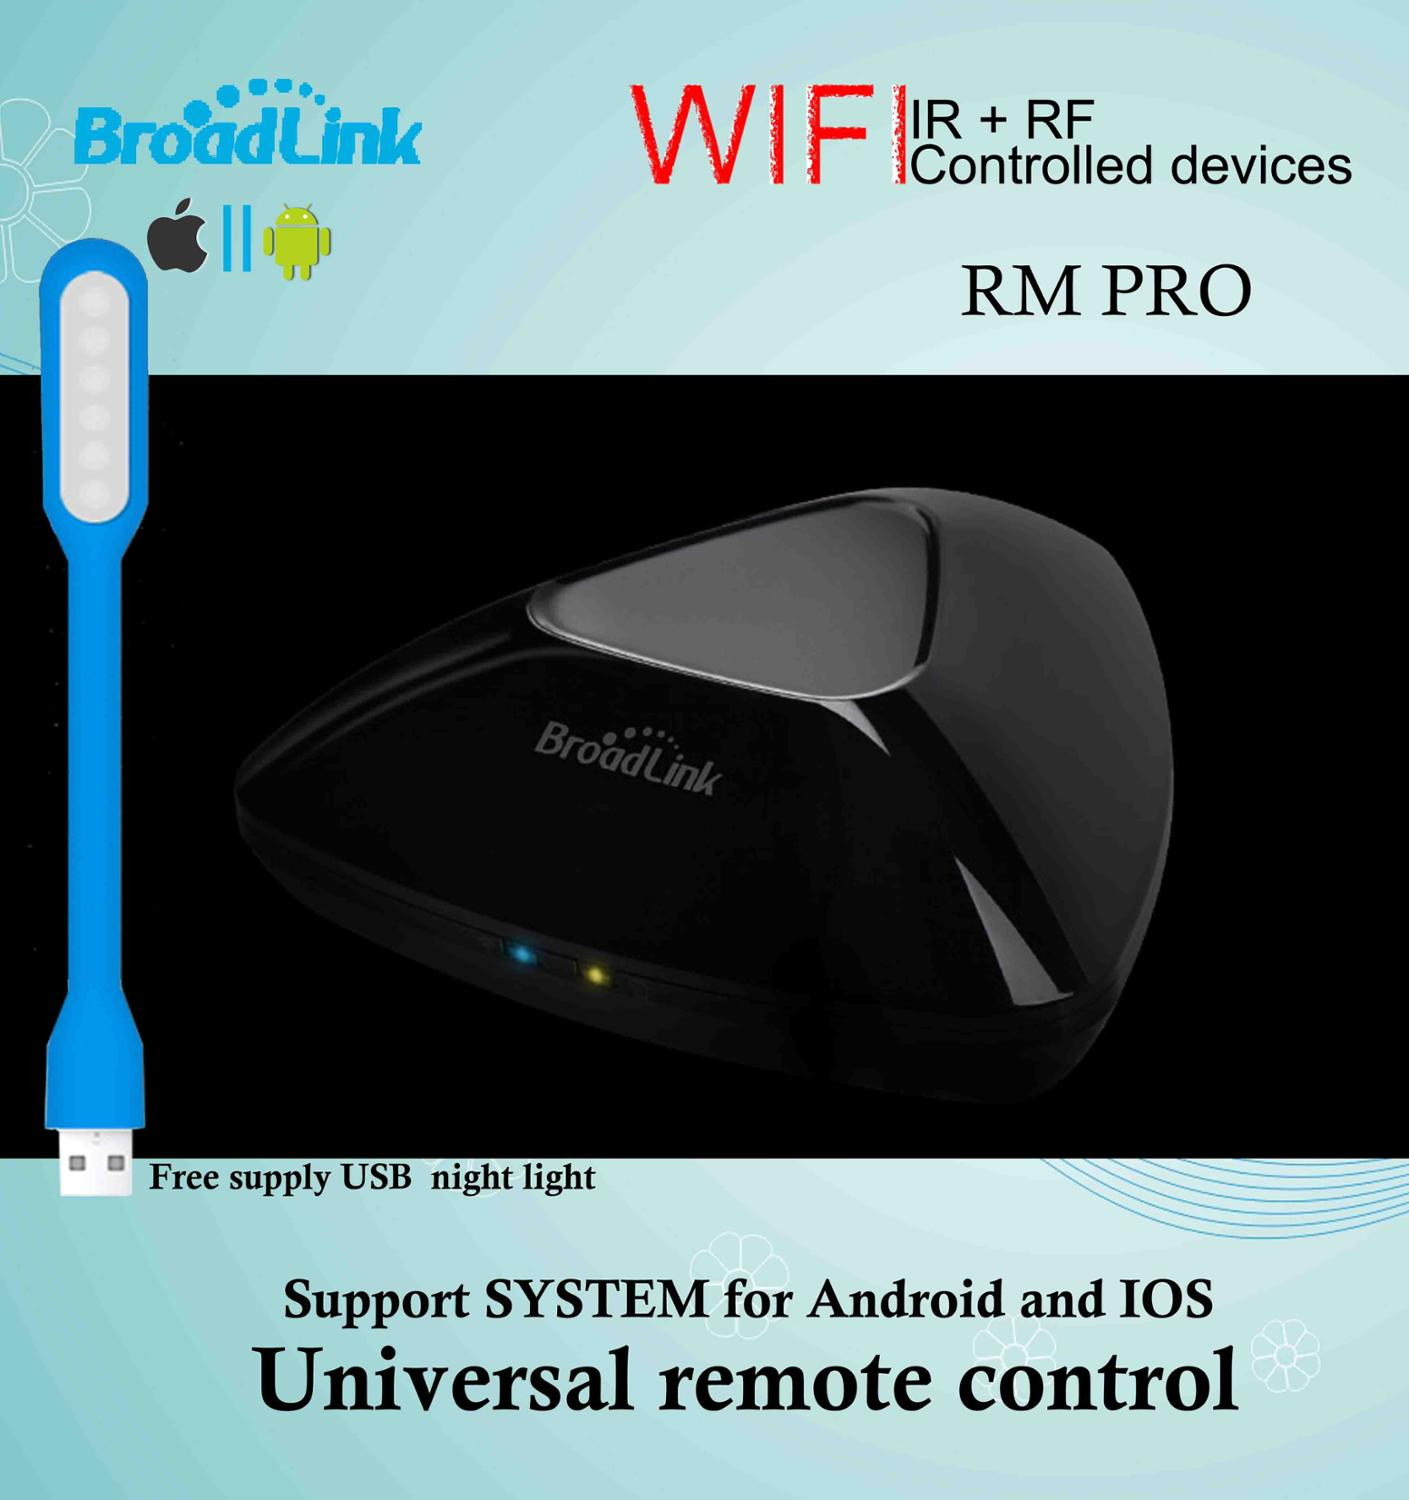 Broadlink smart infrared universal remote control with TVs, air conditioners, audios<br>